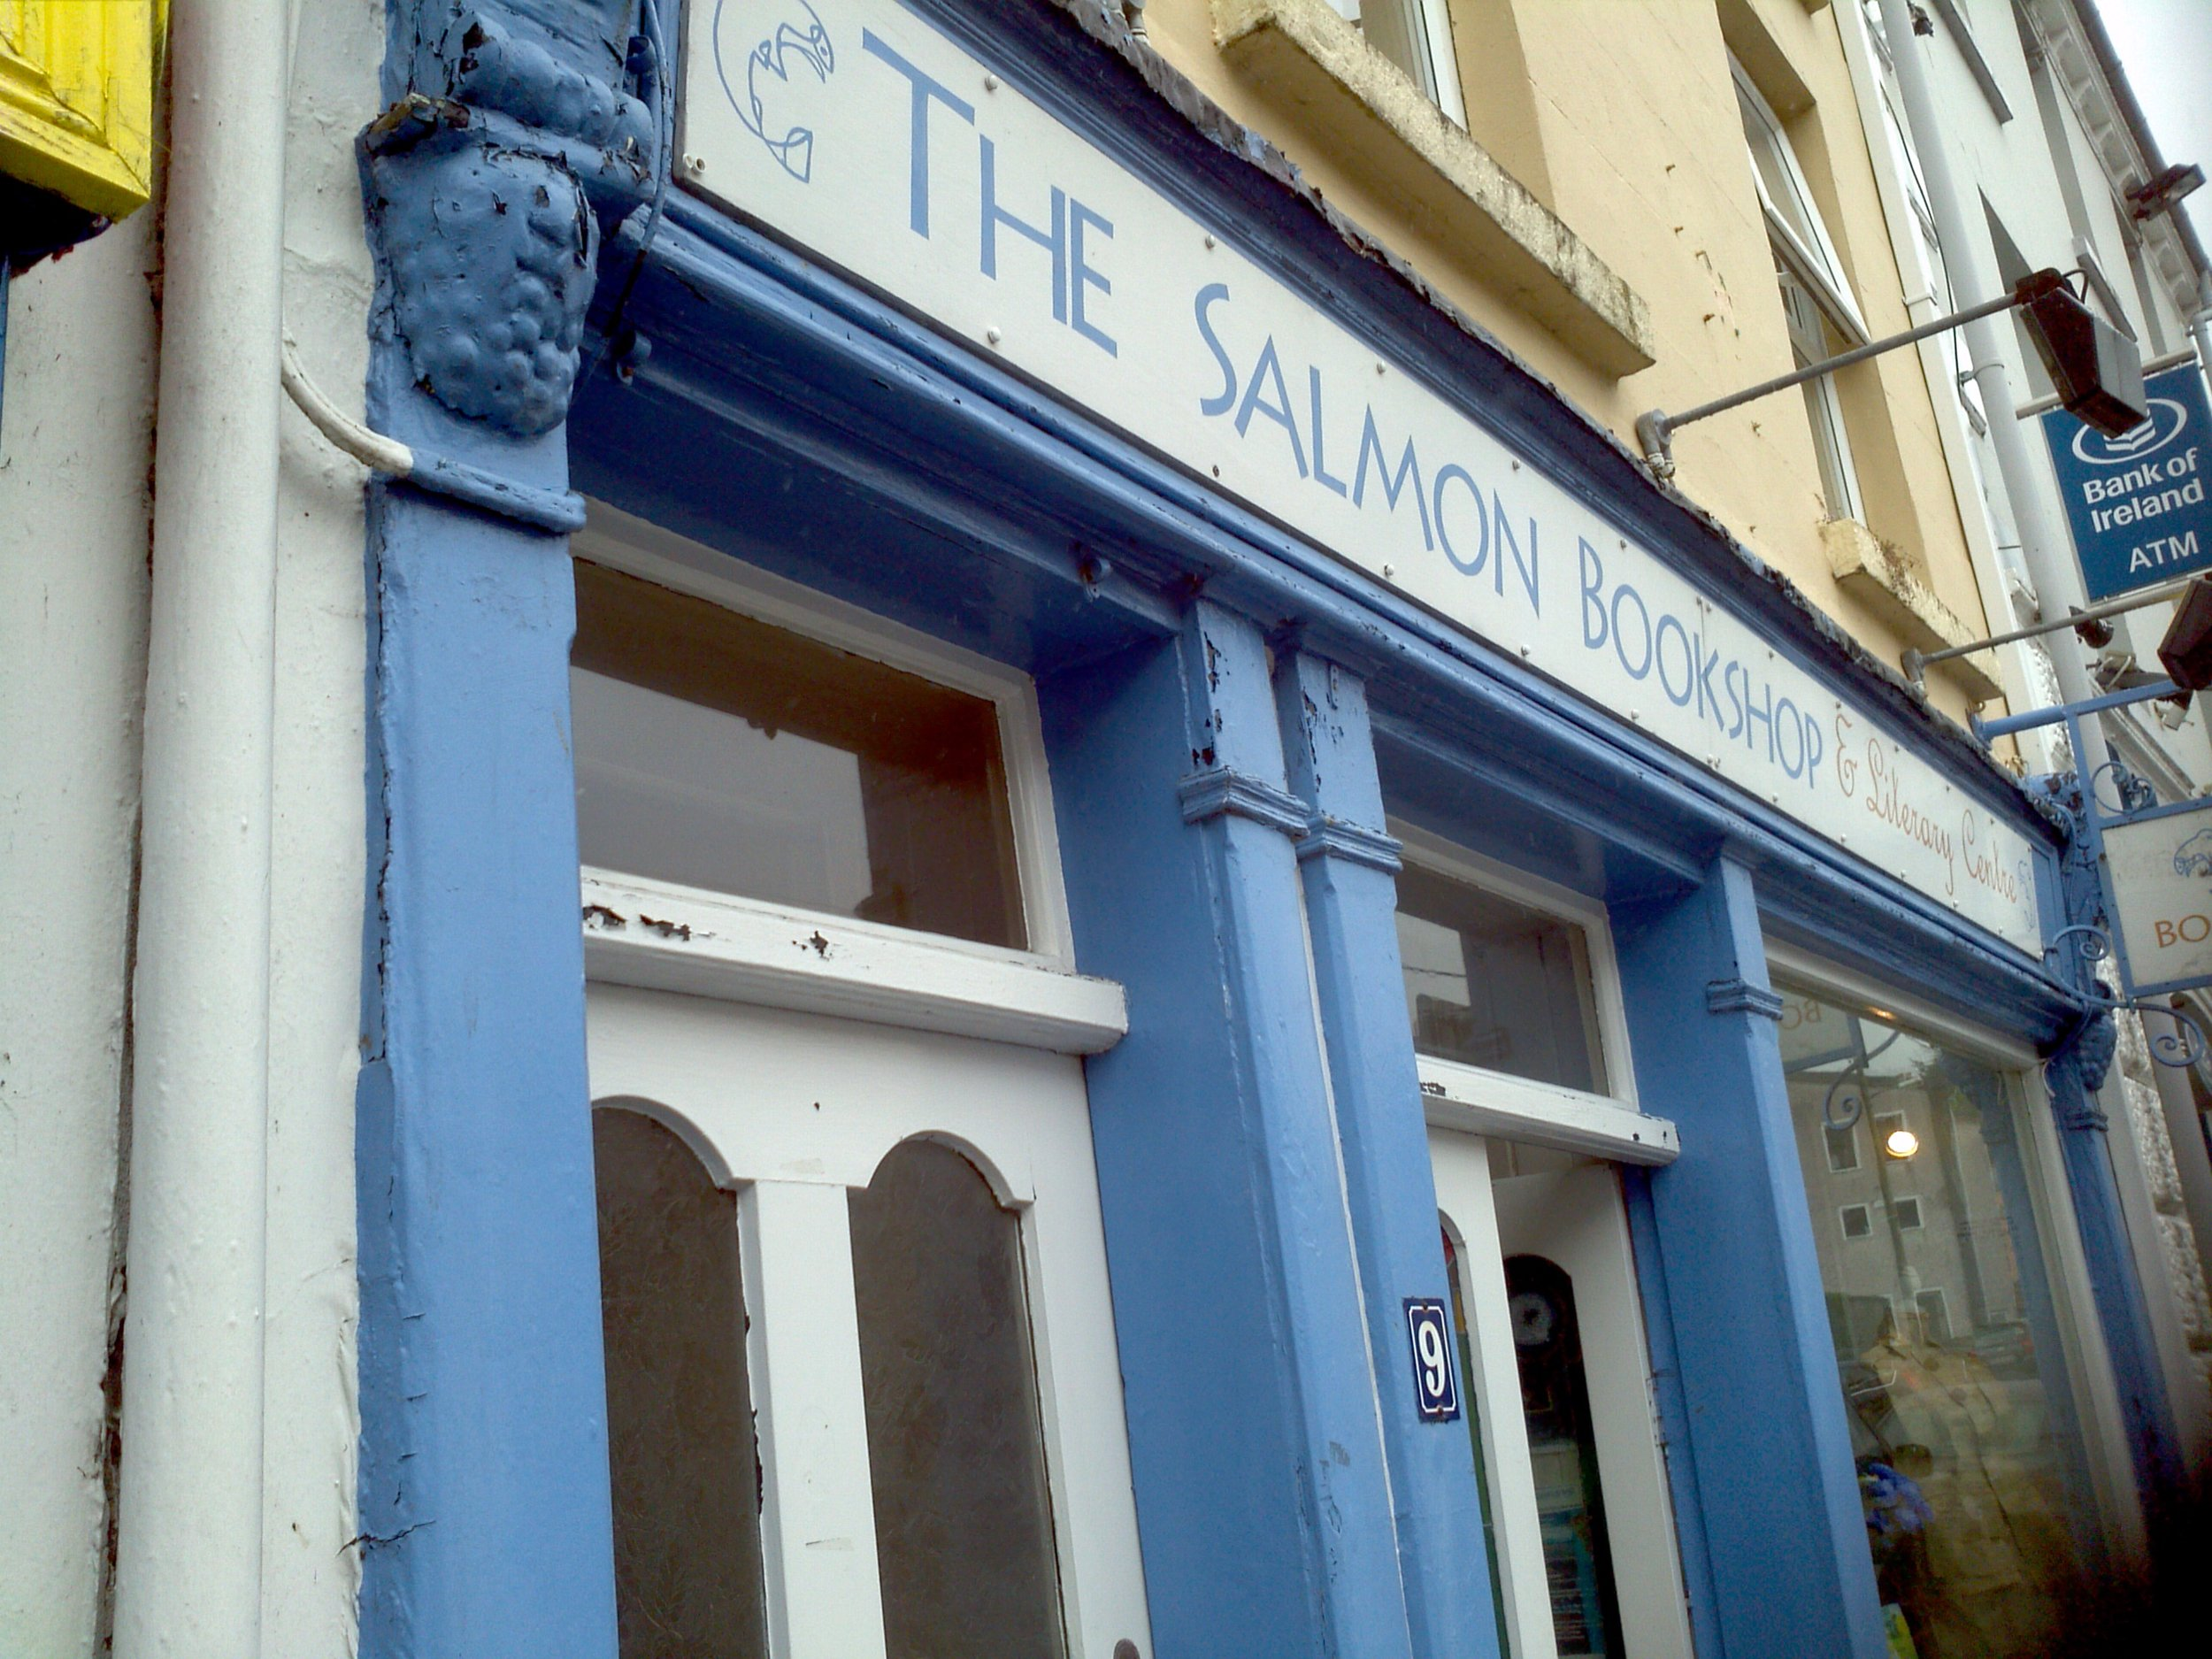 An exterior view of the Salmon Bookshop